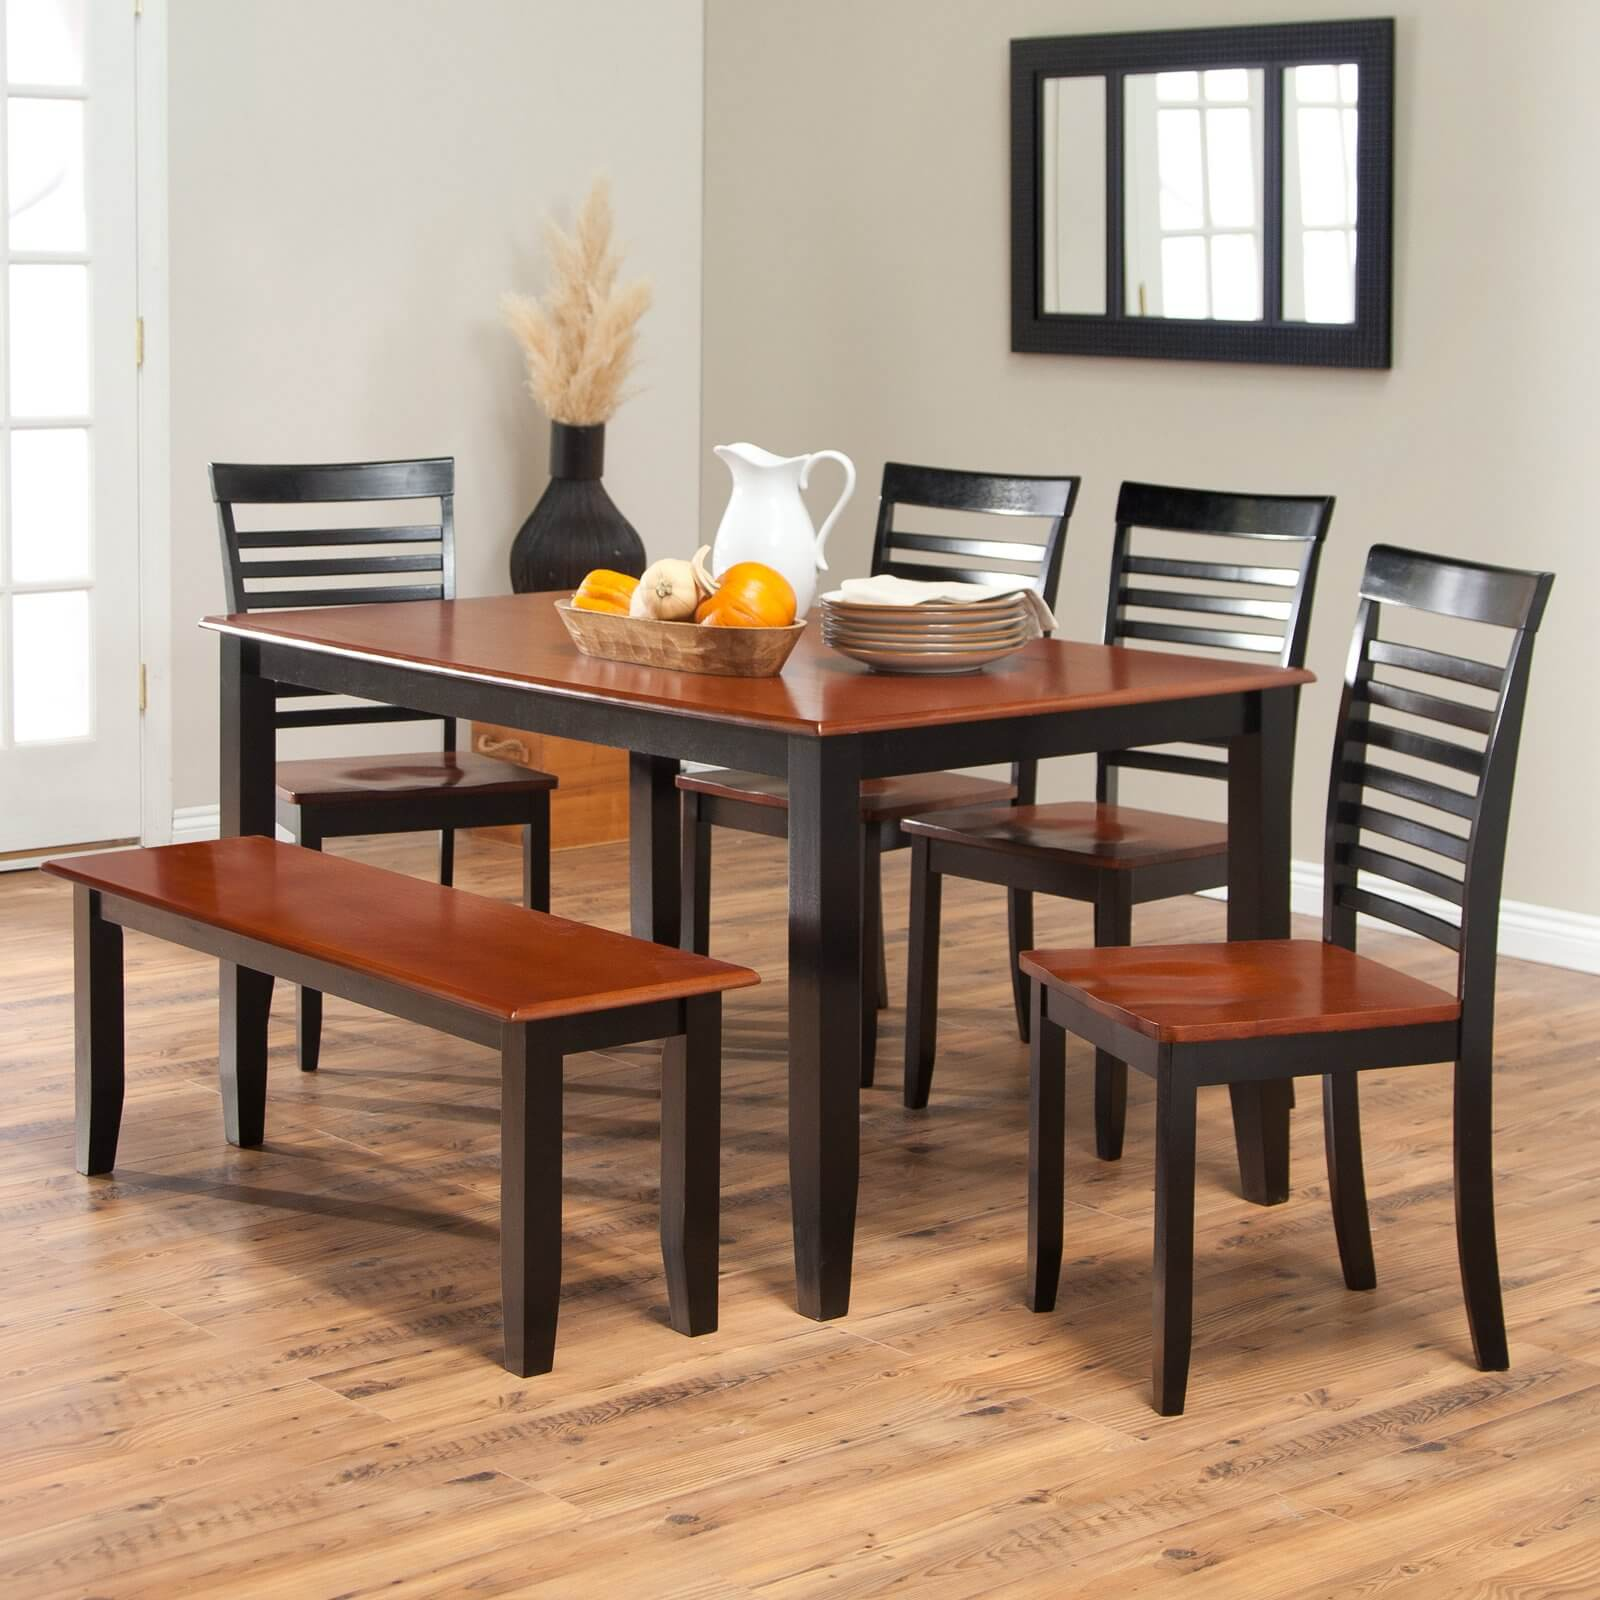 26 big small dining room sets with bench seating iedvzlm